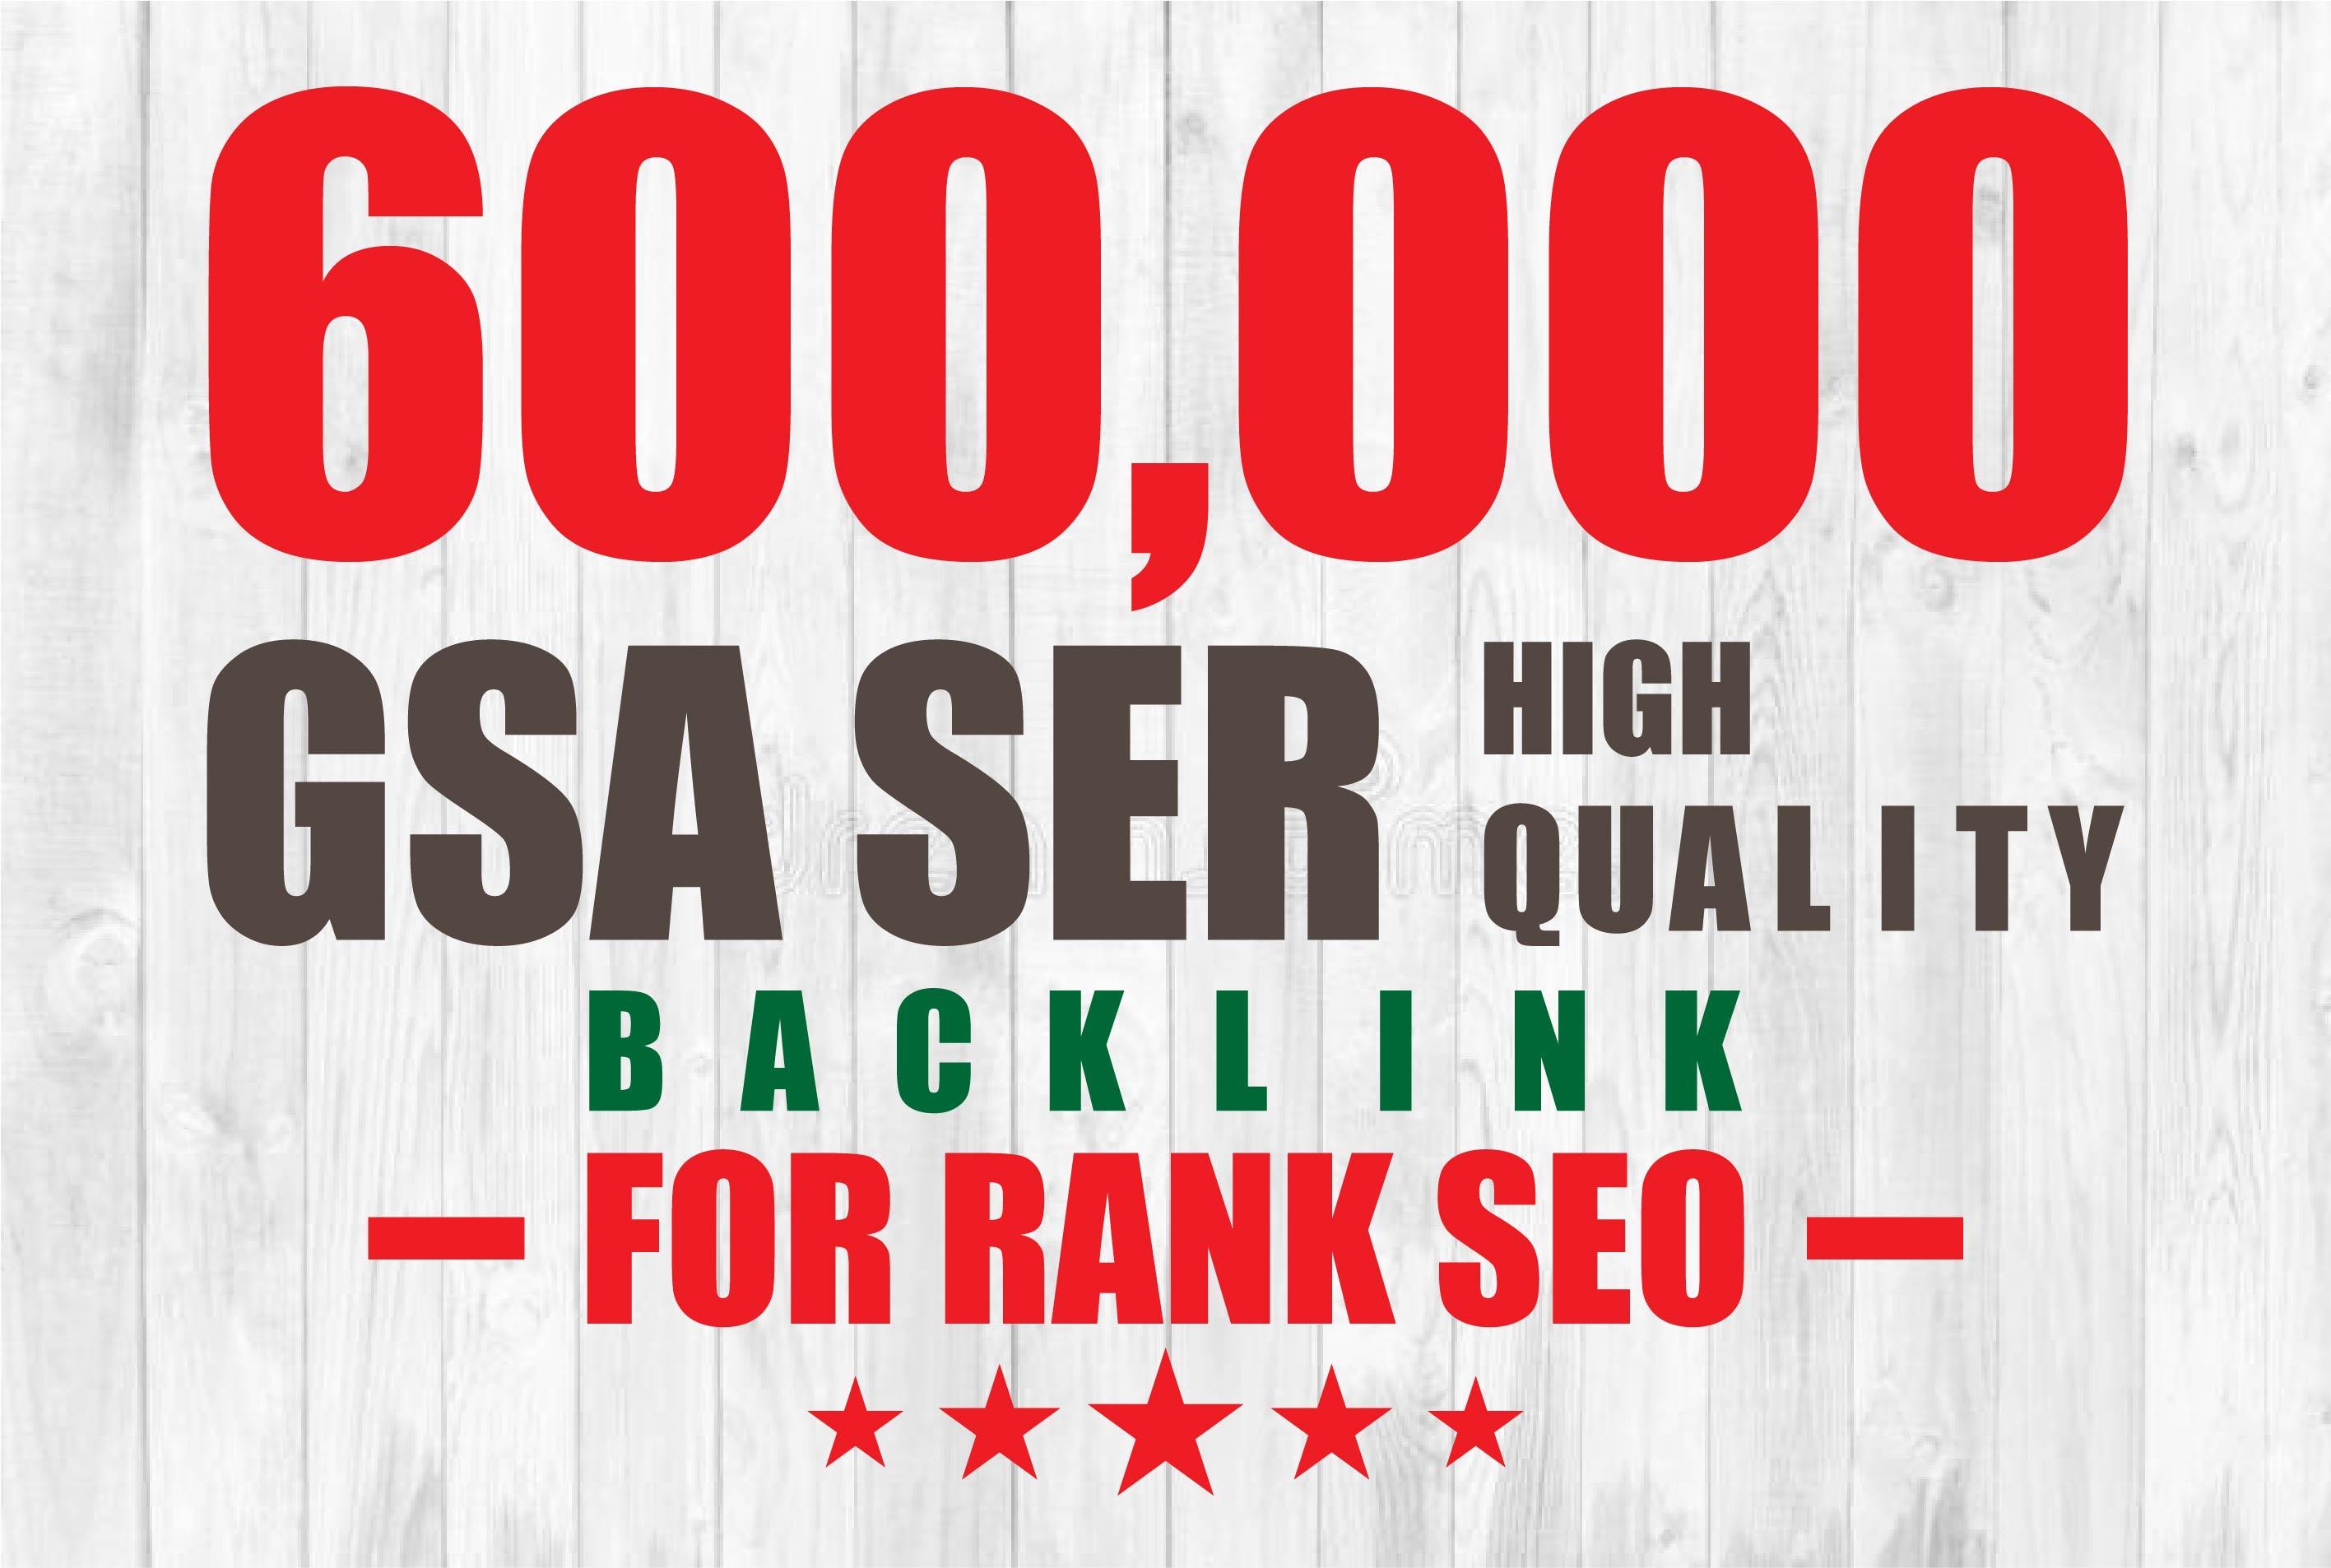 You can get 600k GSA Ser High Quality Backlinks For Rank your website, fabcebook page, youtube